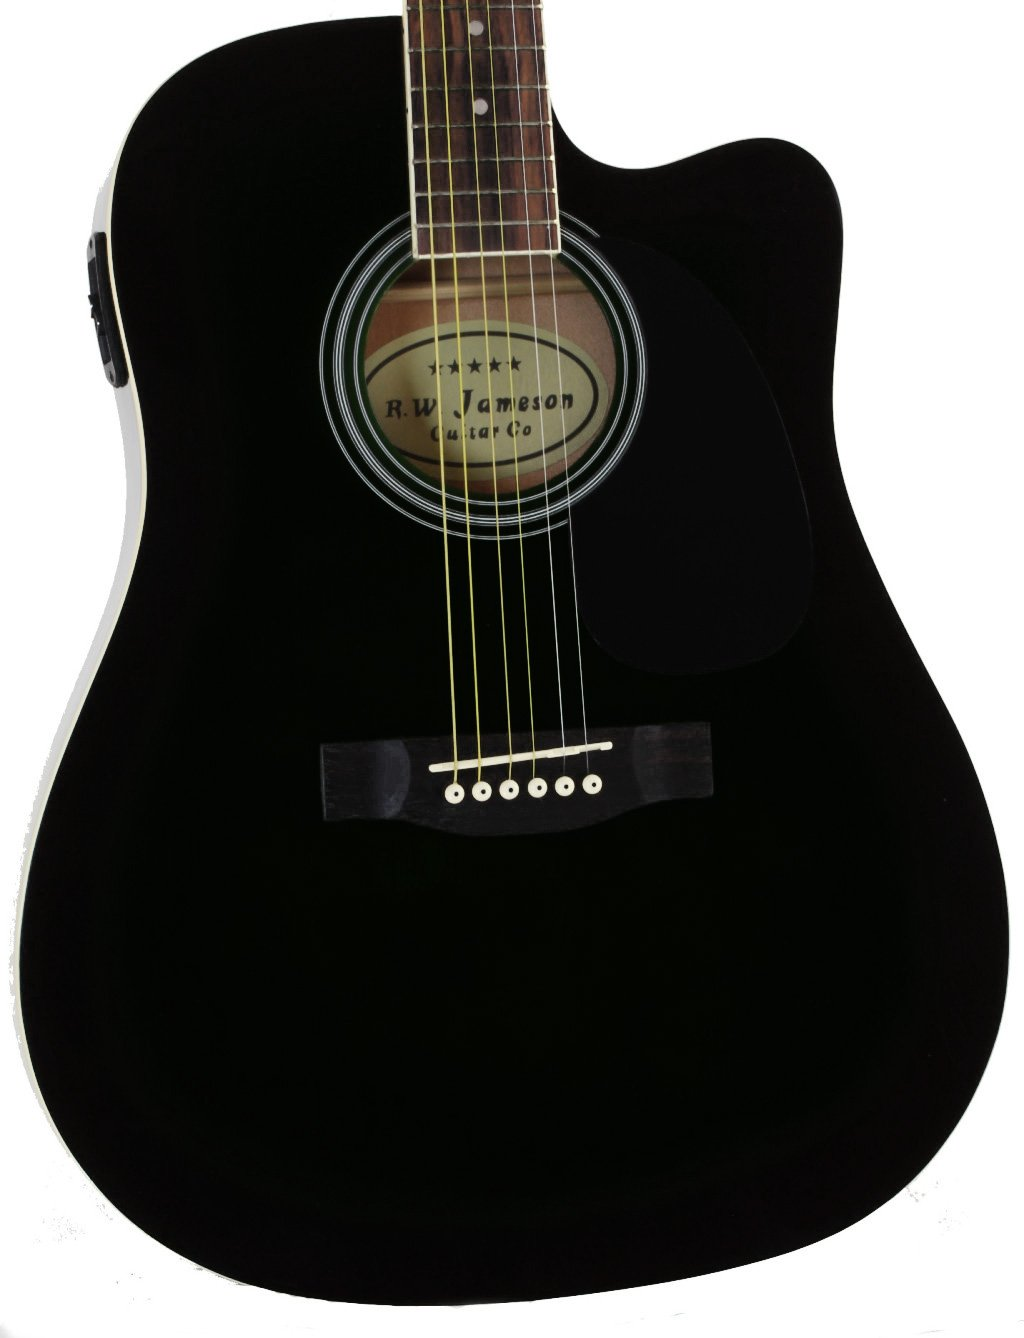 thin acoustic electric black guitar for beginners full size wood body w gig bag ebay. Black Bedroom Furniture Sets. Home Design Ideas